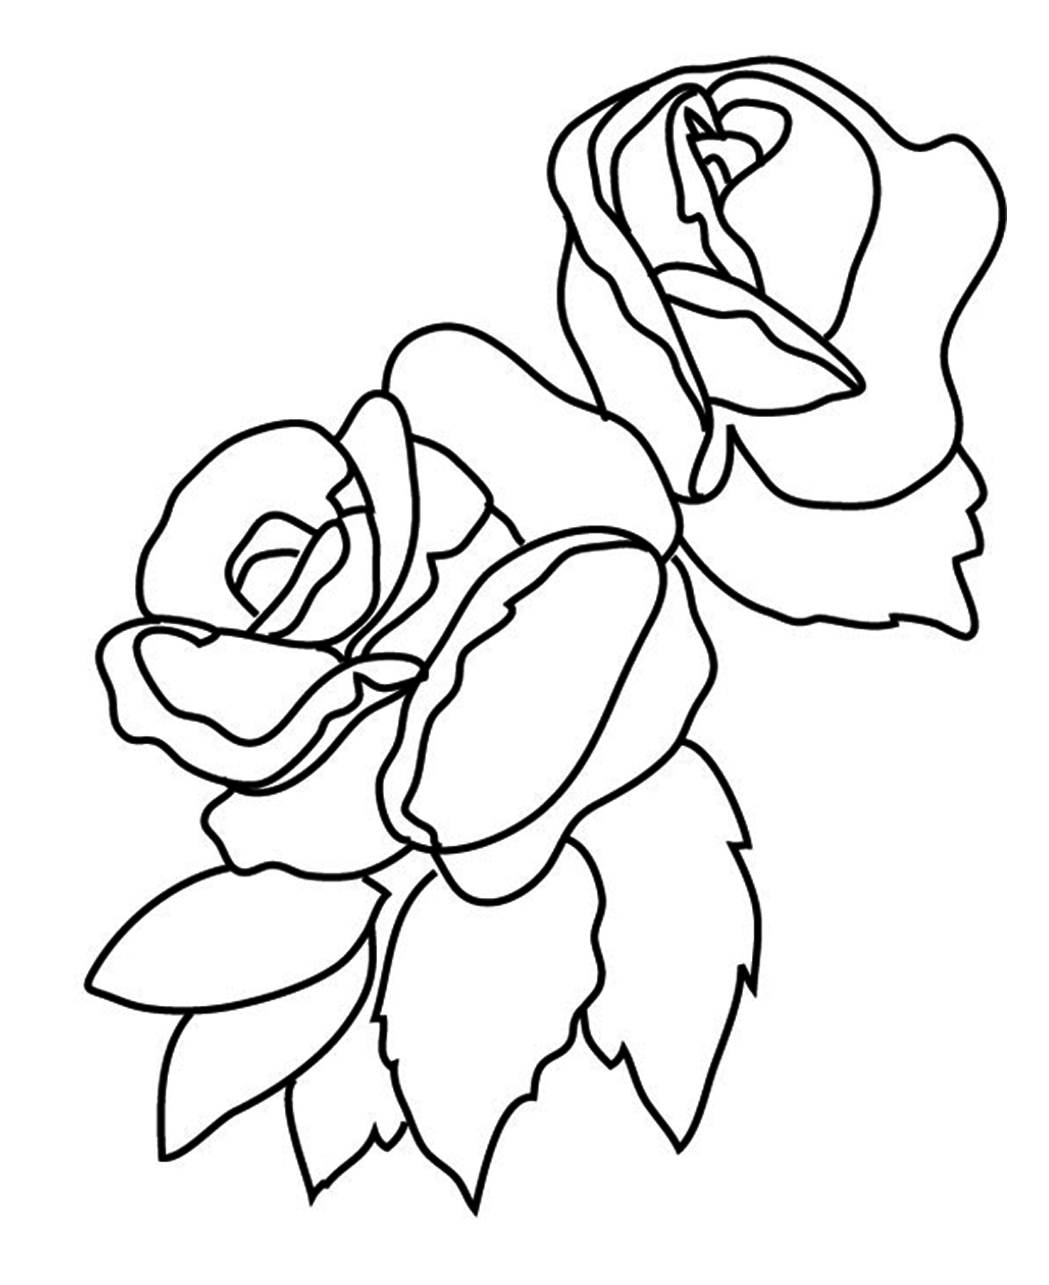 1049x1285 Coloring Pages For Girls Rose Easy Printable To Fancy Draw Print